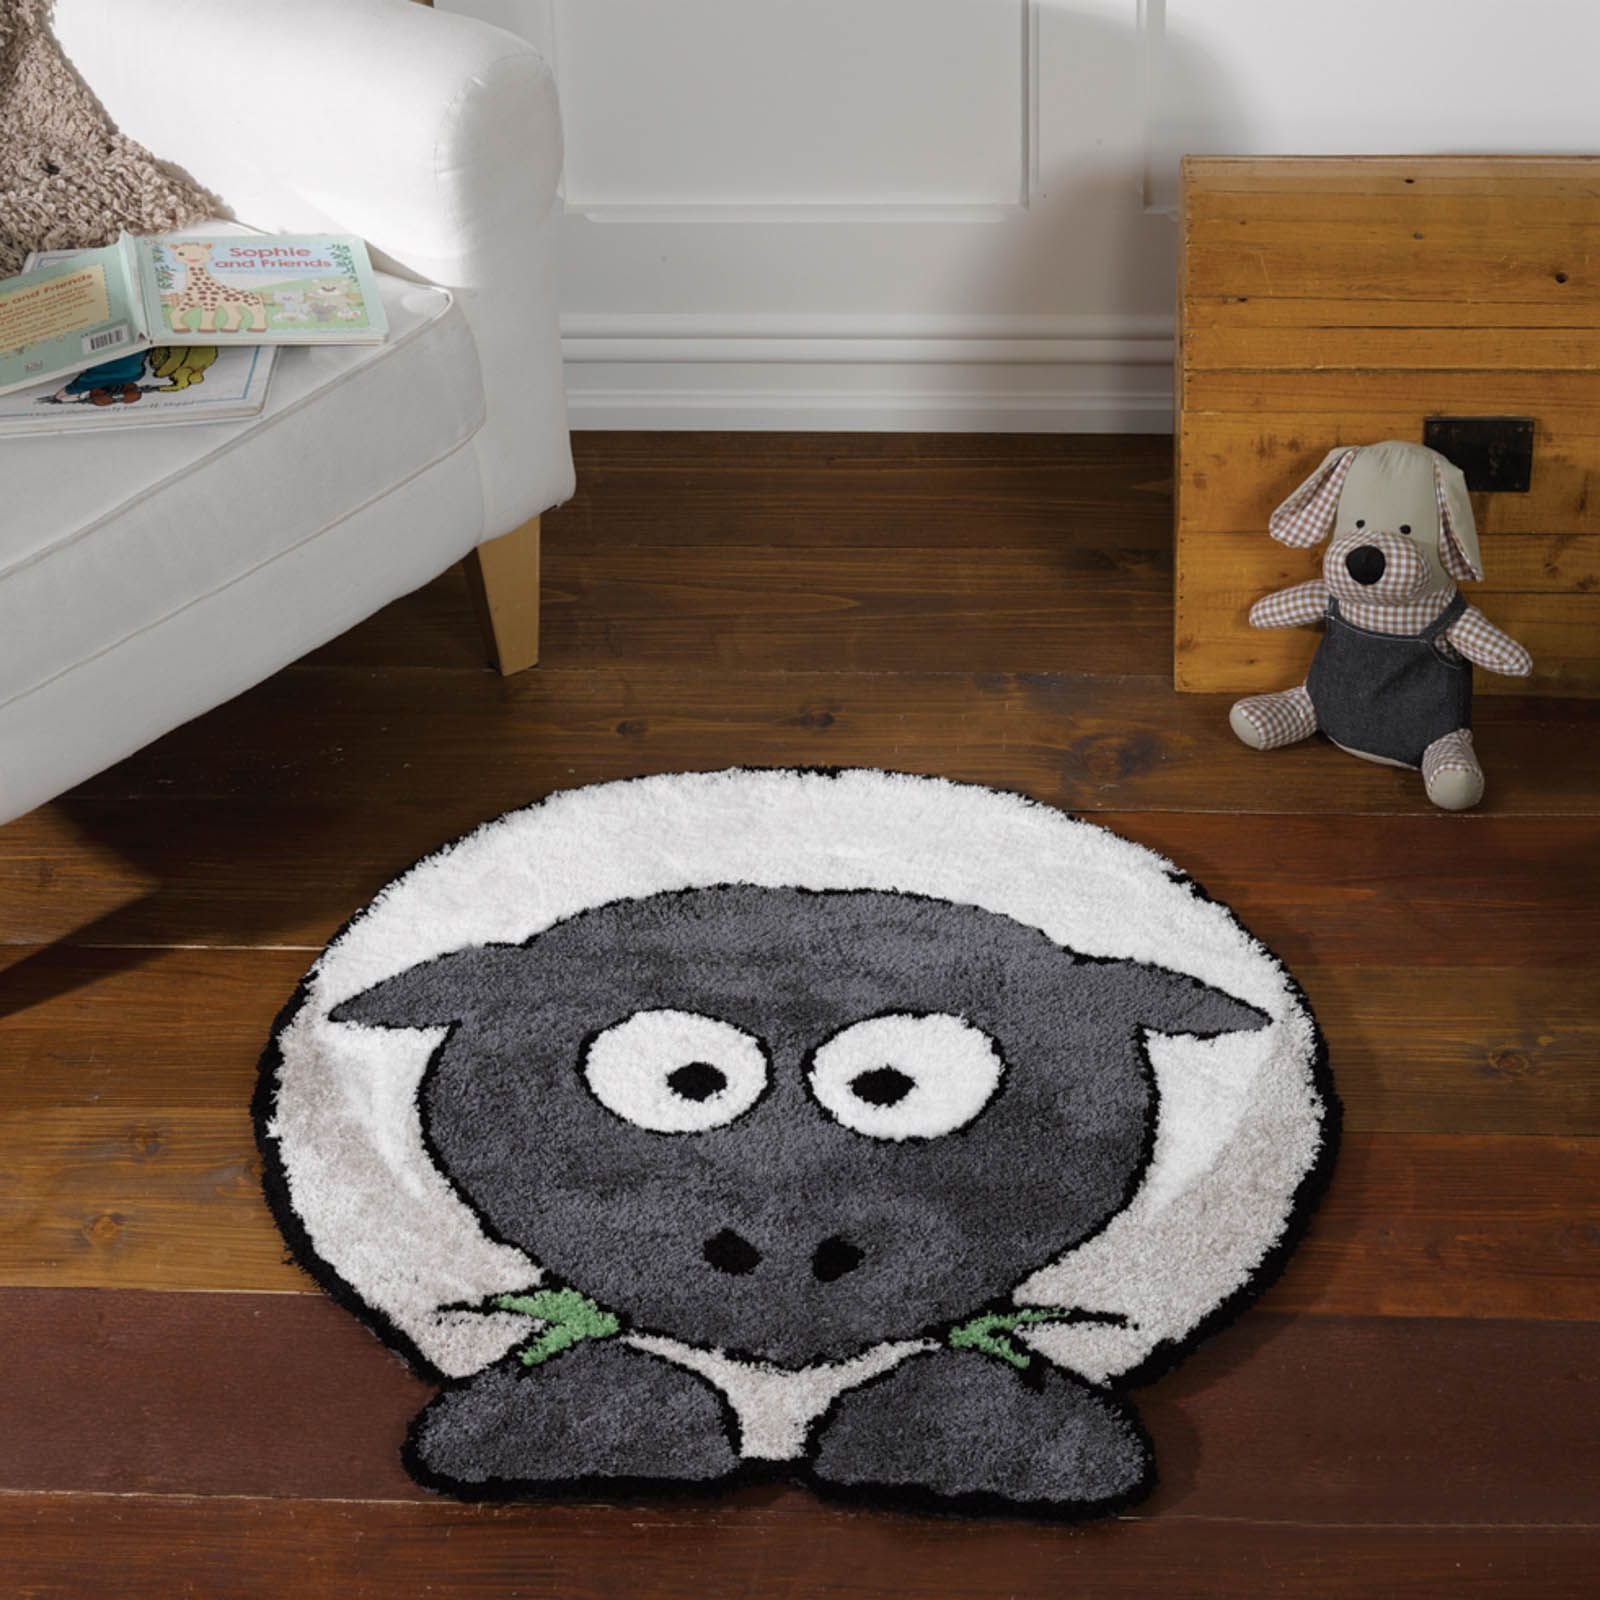 The Sybil Sheep Nursery Rug Features A Adorable Soft Fleecy Munching On Some